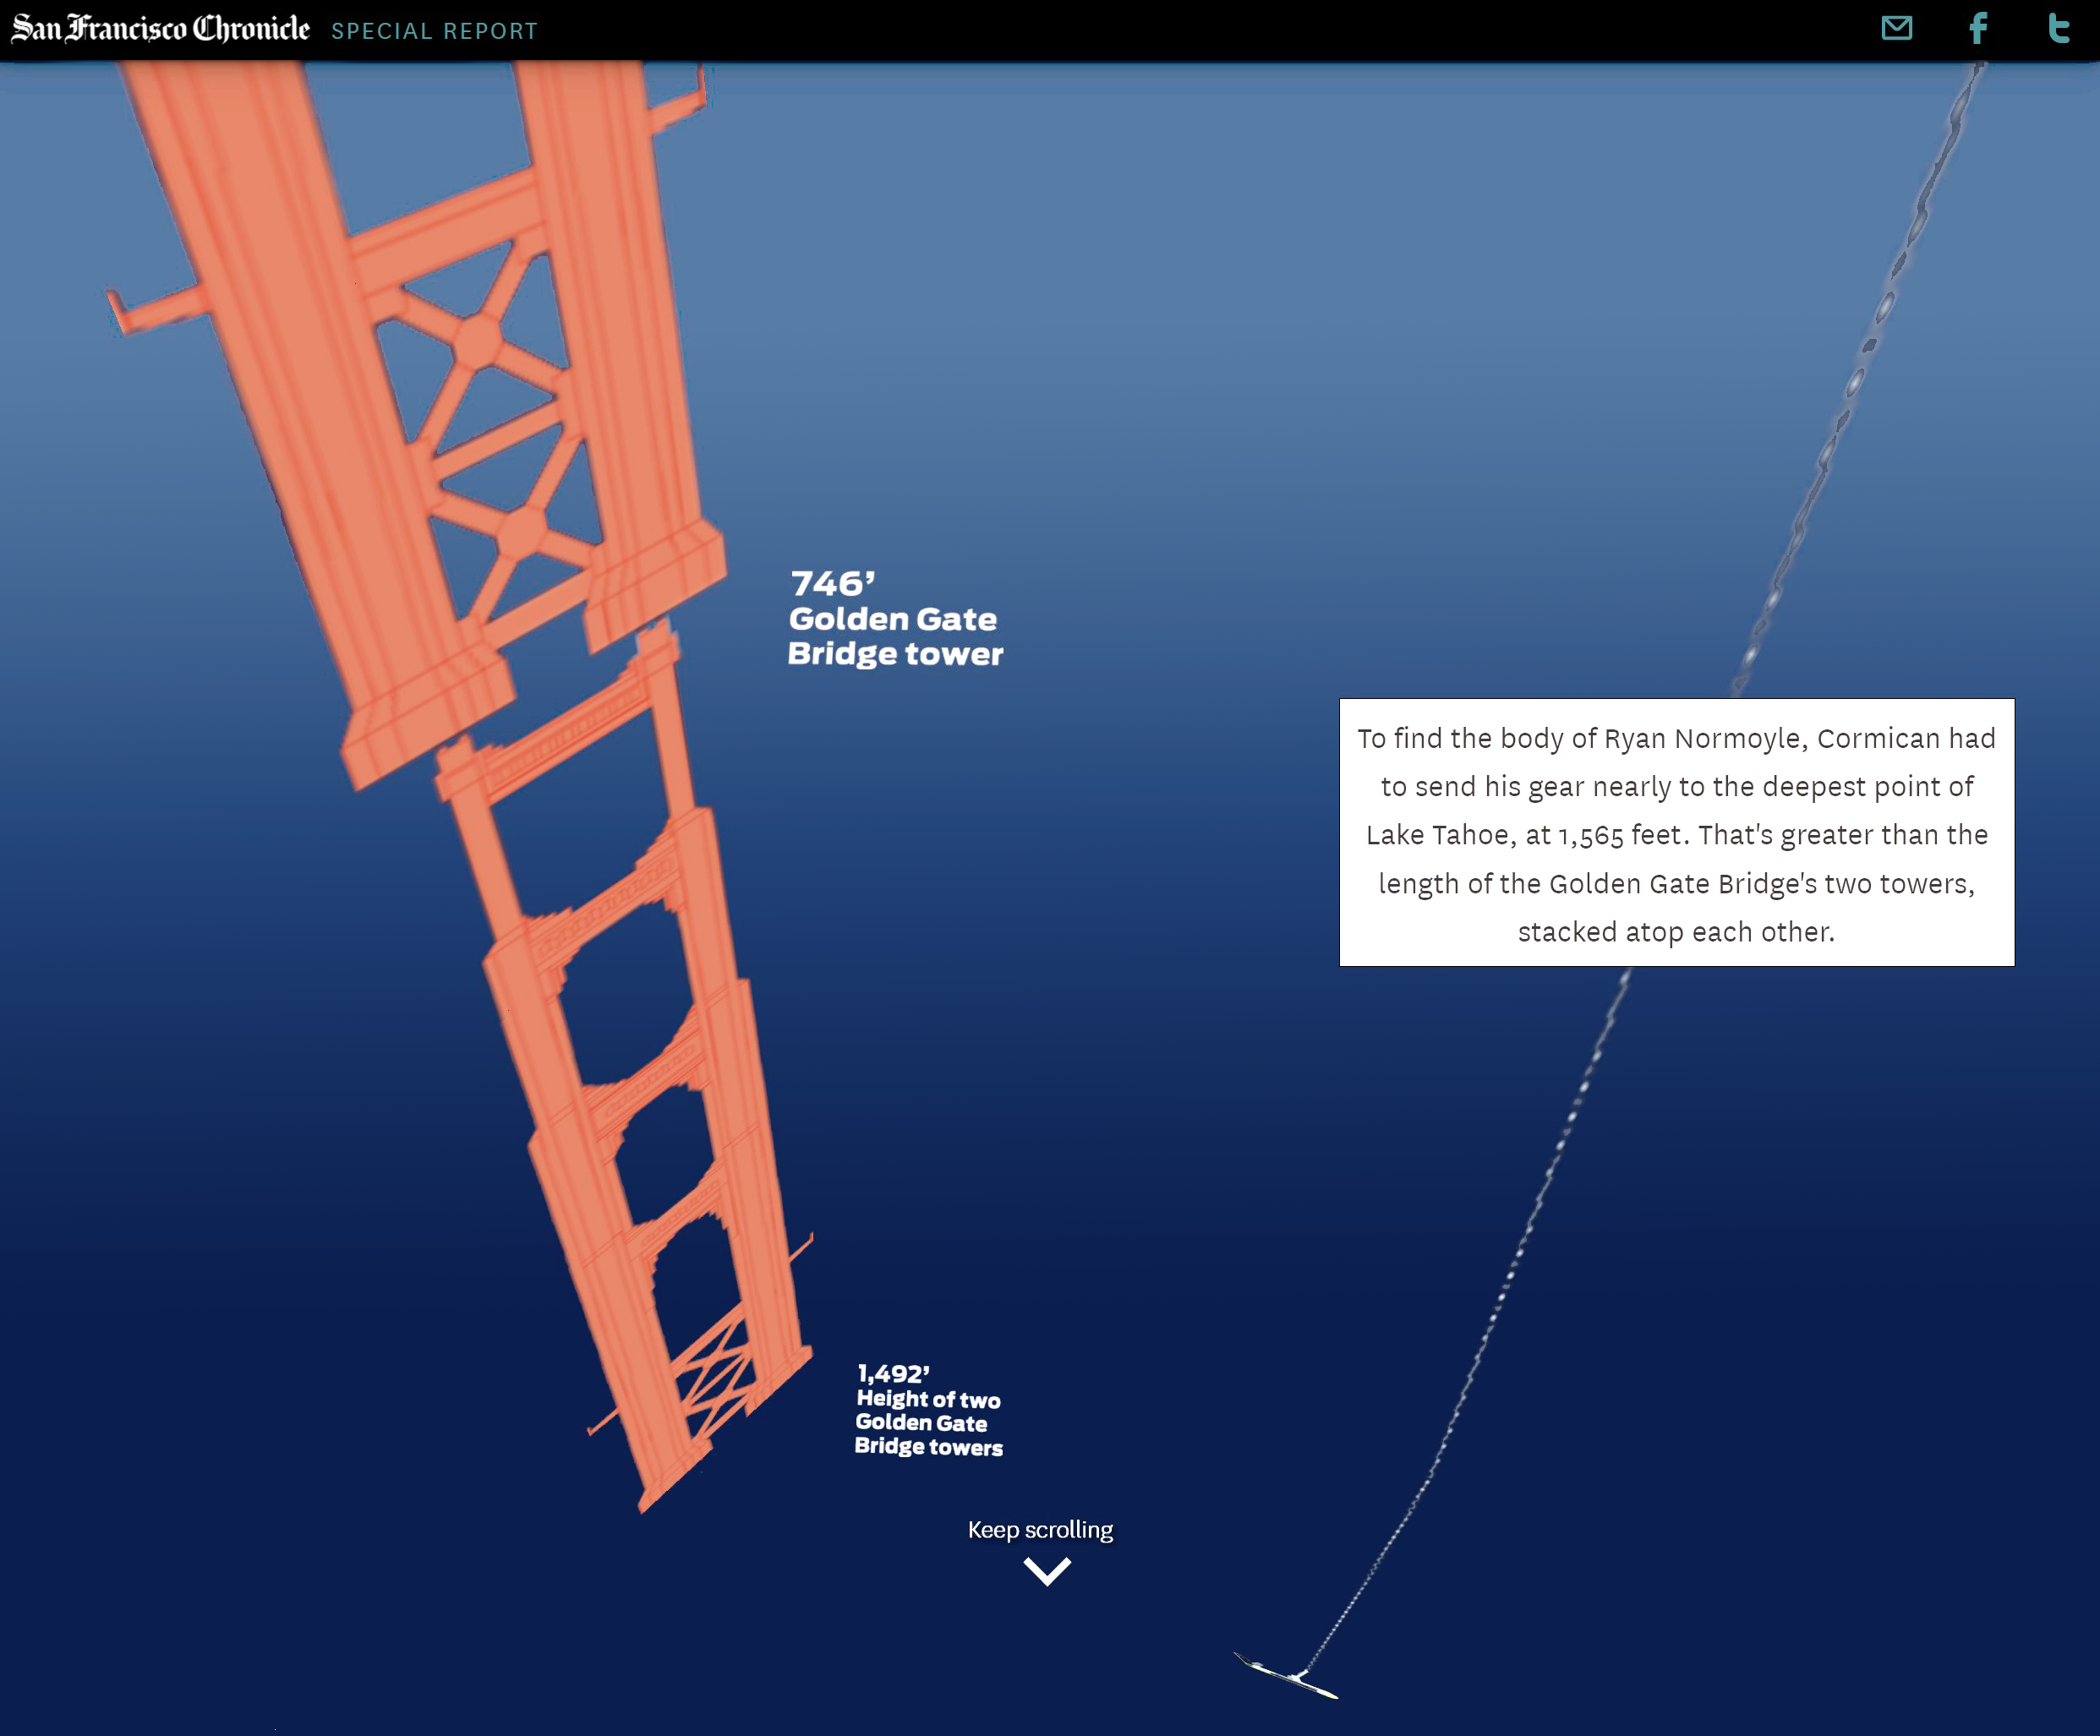 Screenshot from an article by the San Francisco Chronicle.  The scene shows the depth of a lake using 2 stacked golden gate bridges for reference.